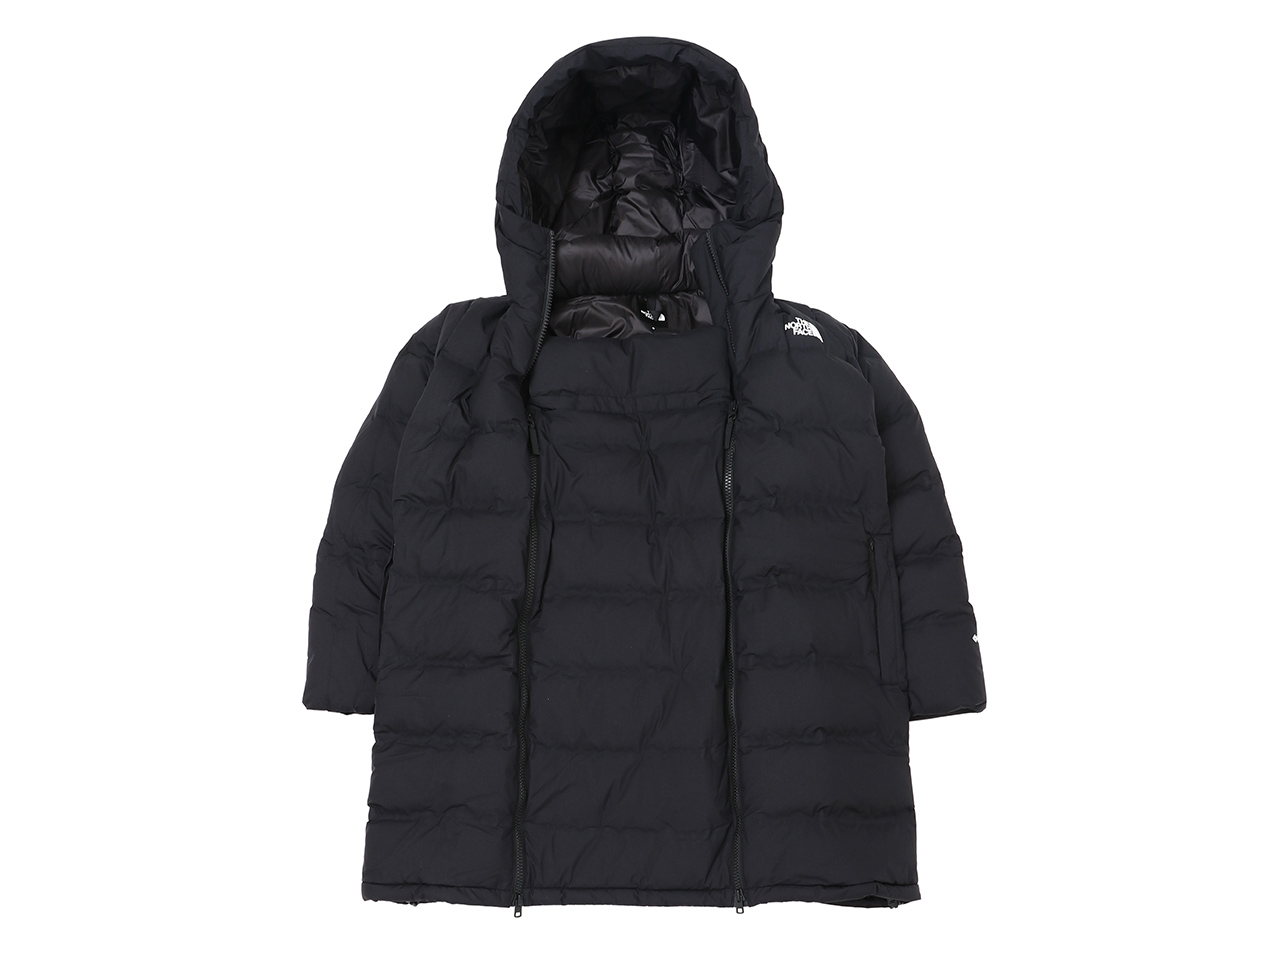 THE NORTH FACE Maternity Down Coat - NDM91901